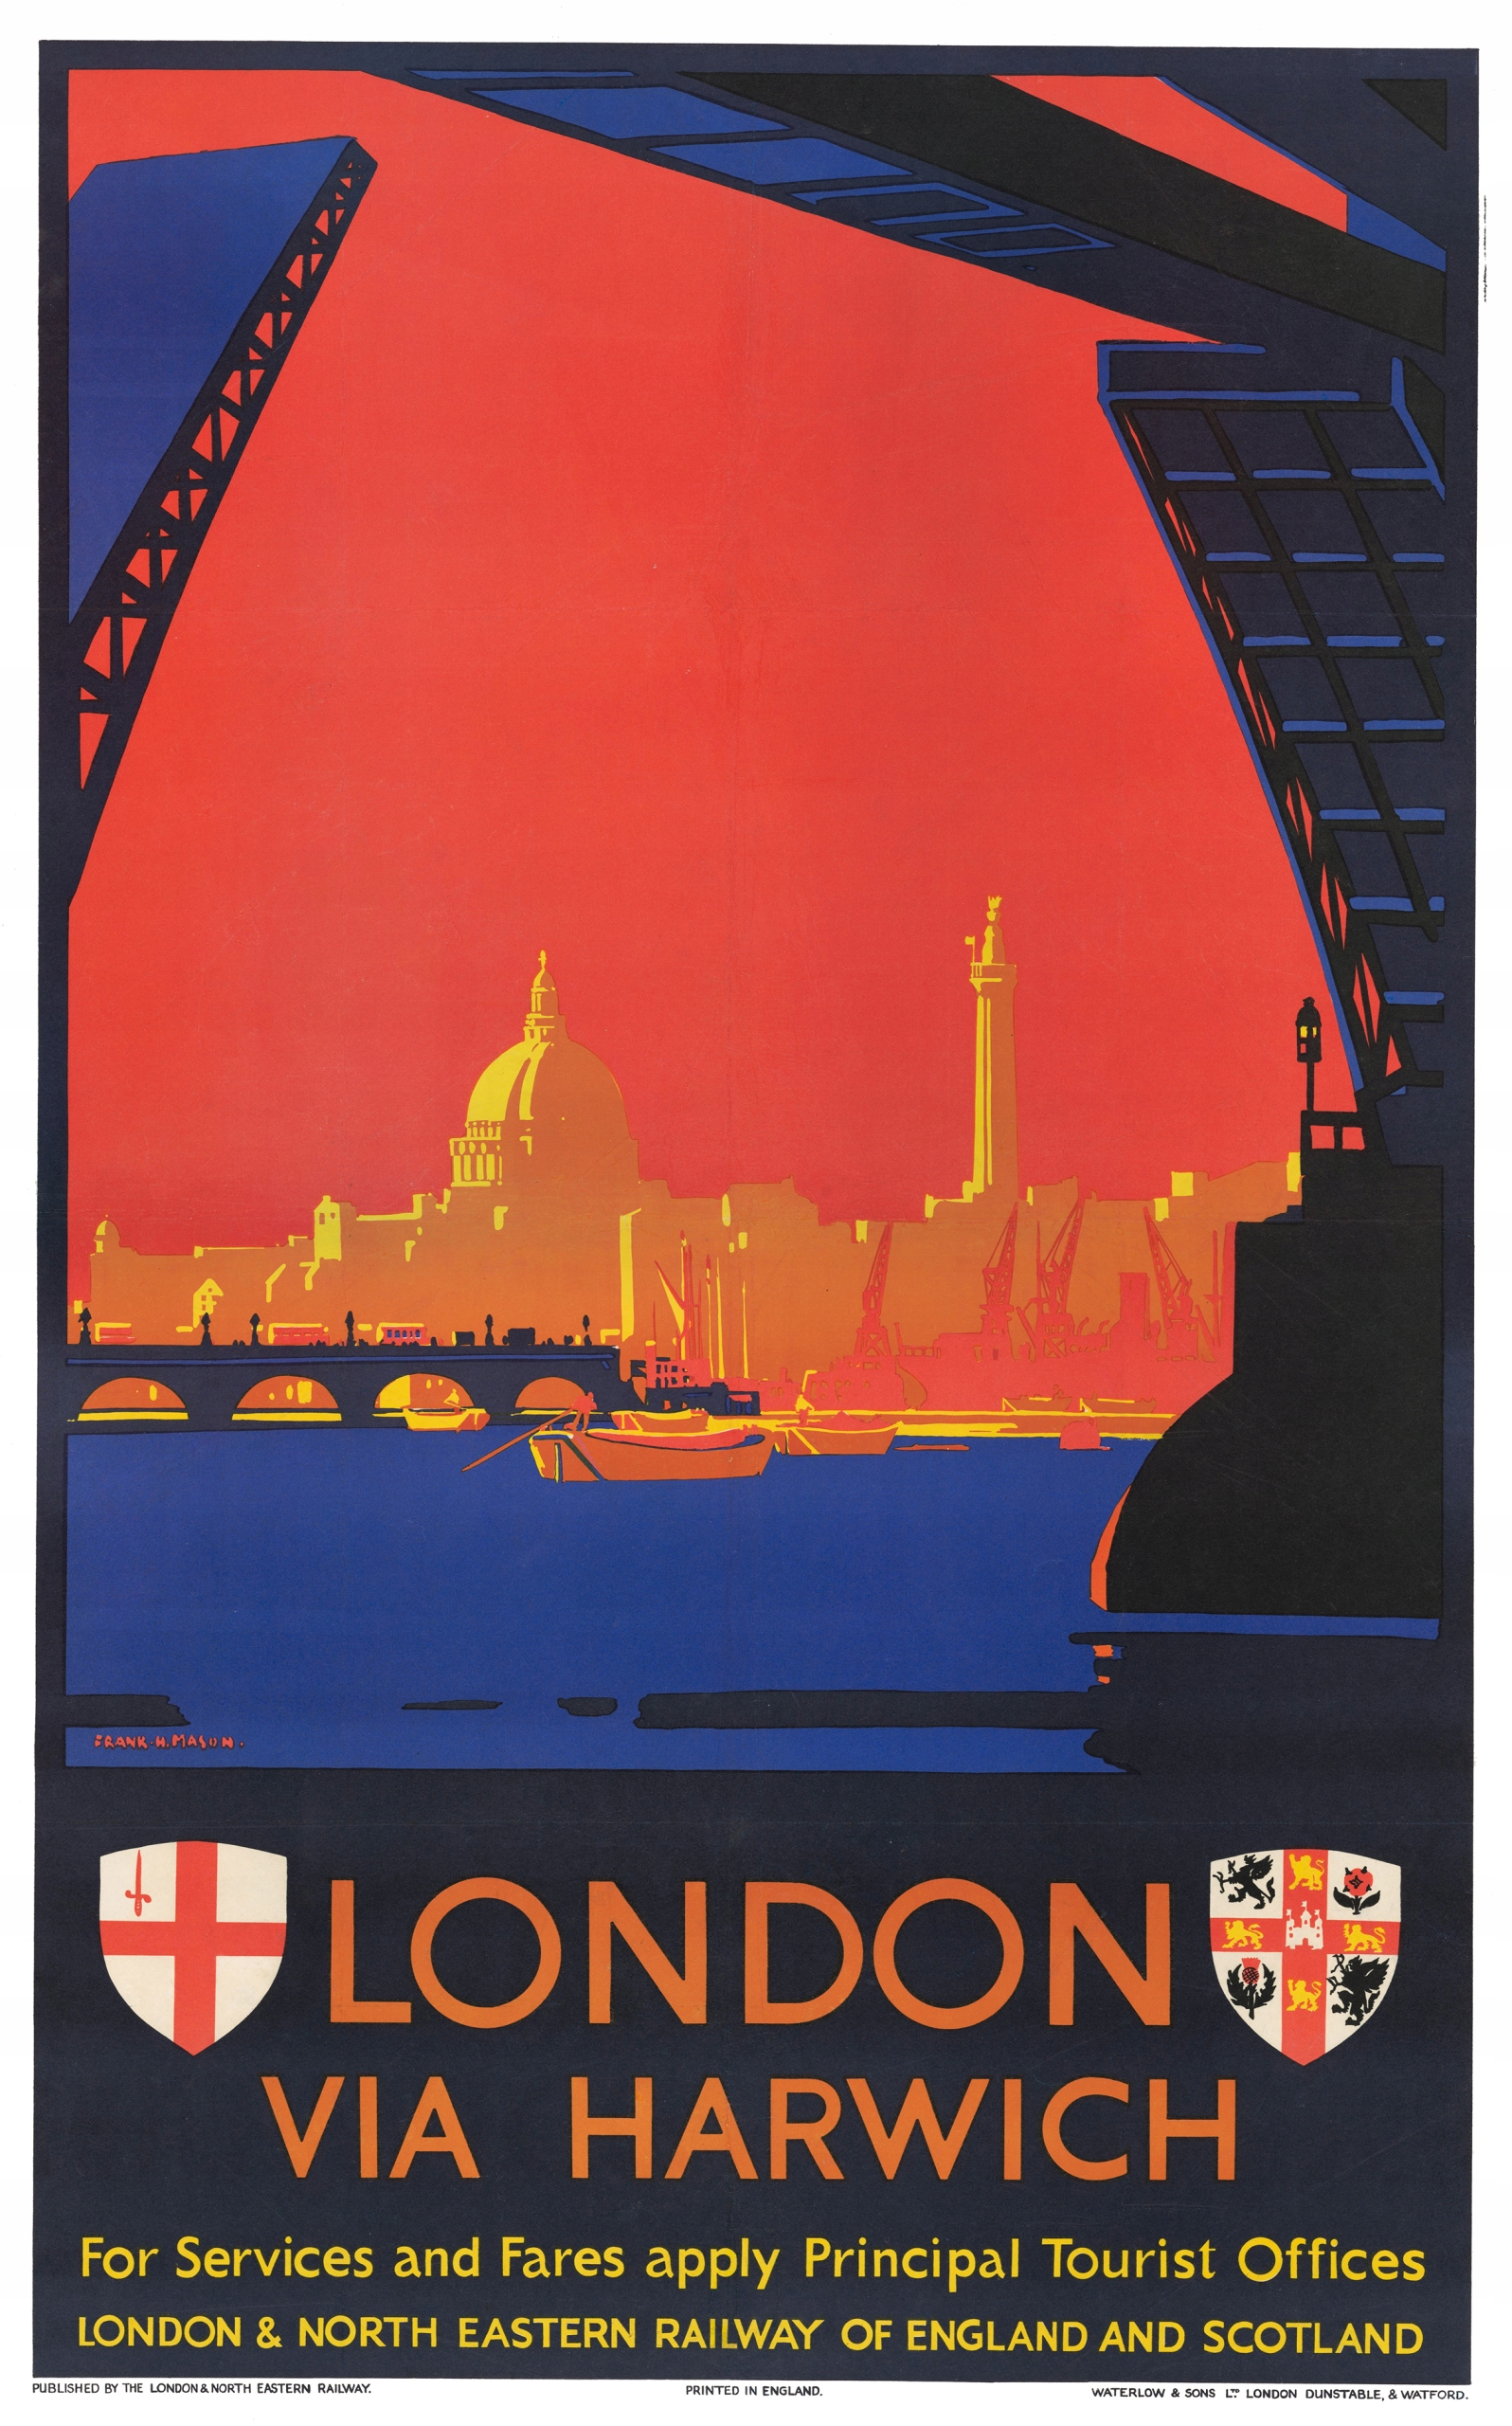 Item travel poster LONDON, England 61x40 cm